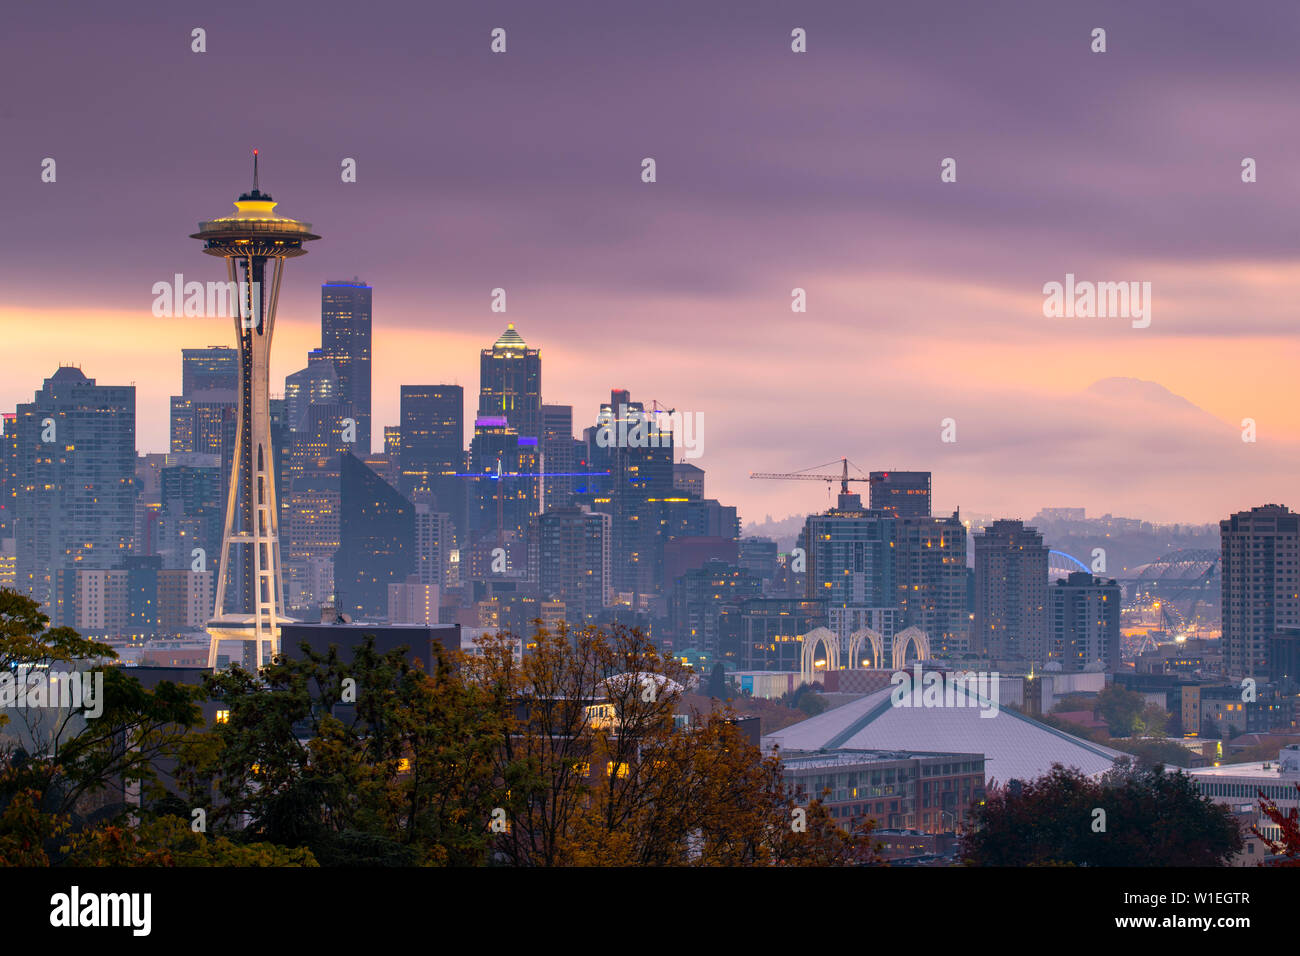 View of the Space Needle from Kerry Park, Seattle, Washington State, United States of America, North America - Stock Image